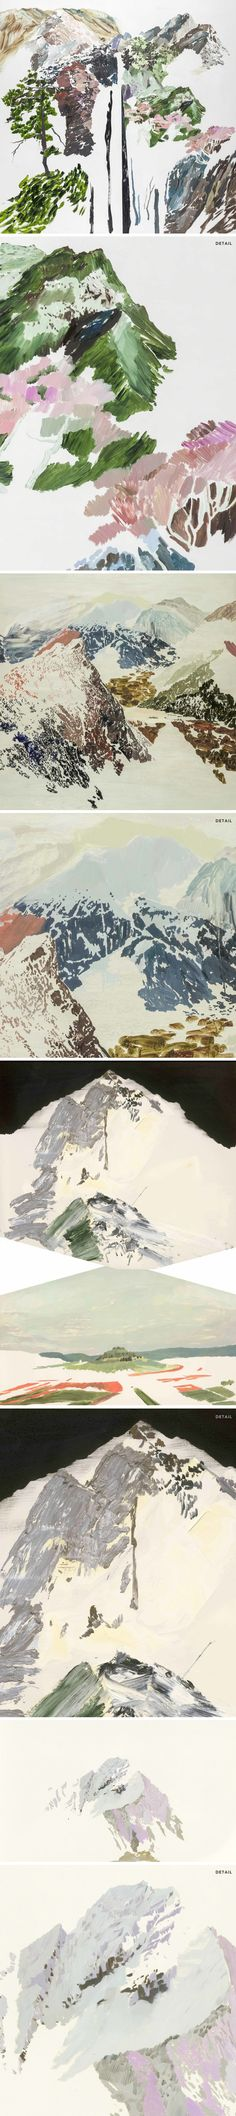 The Jealous Curator /// curated contemporary art /// chih-hung kuo Abstract Nature, Abstract Landscape, Painting Inspiration, Art Inspo, Mountain Drawing, Collage Drawing, Art Thou, Pixel, Weird Art